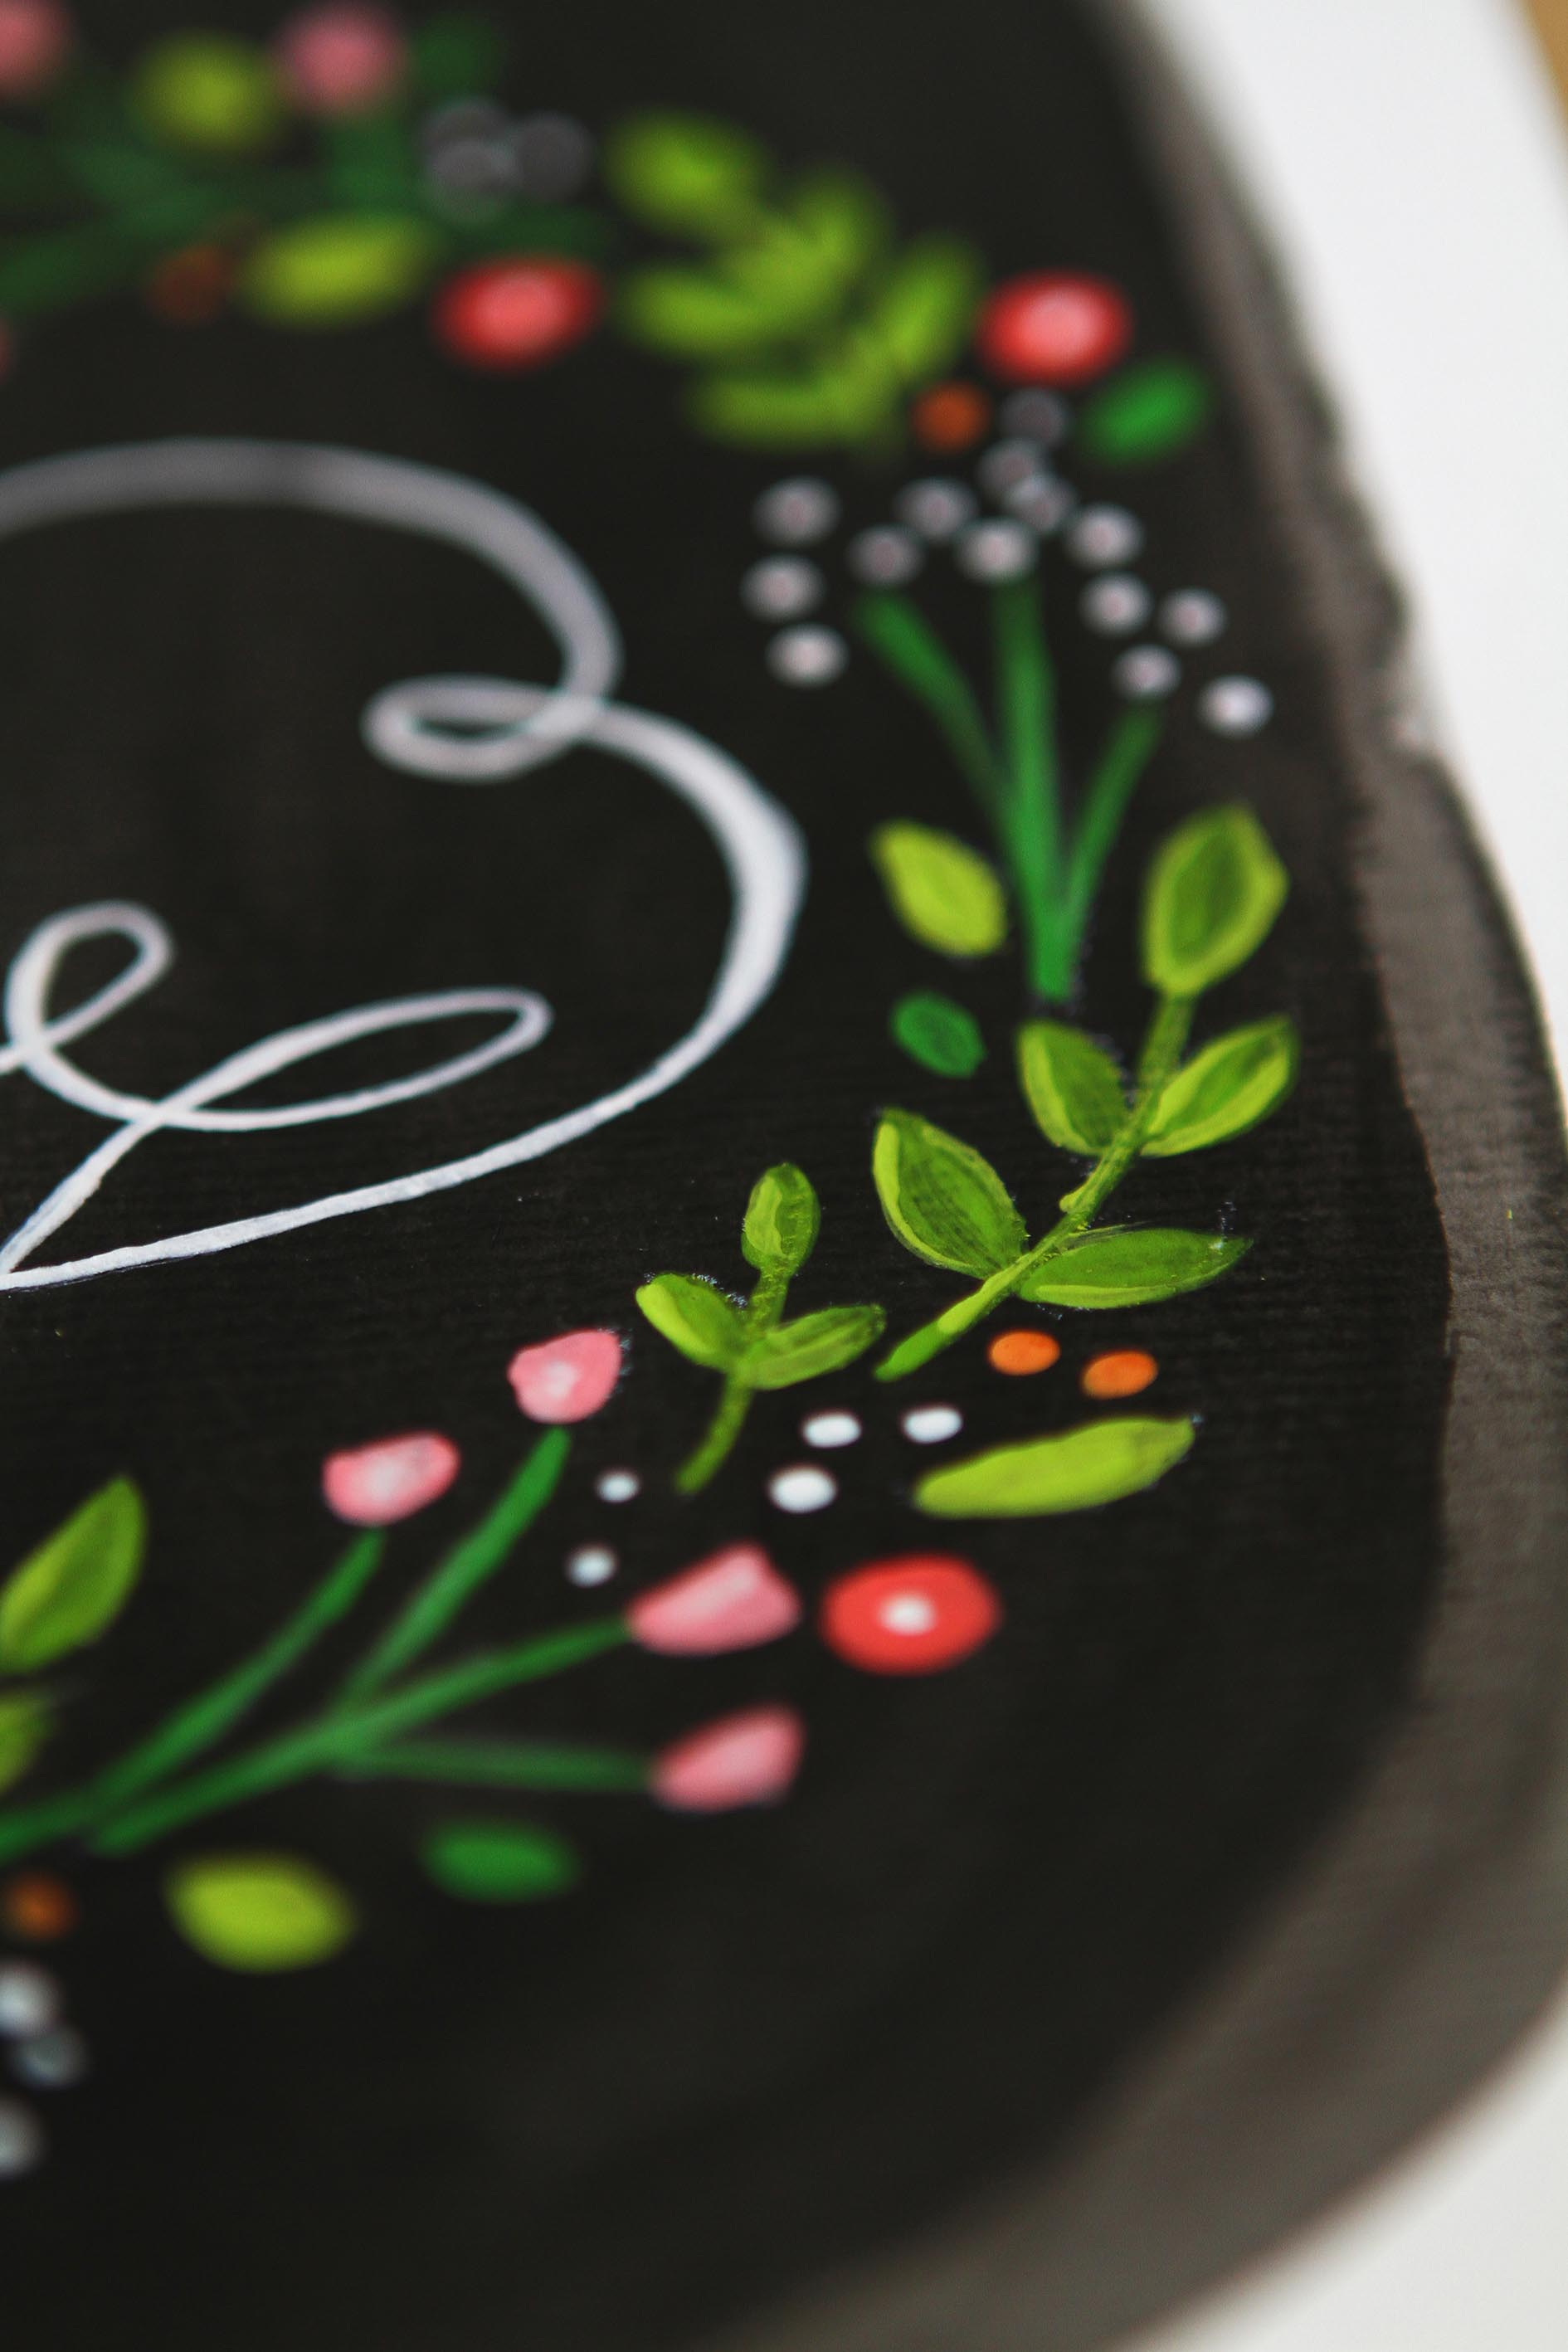 illustrator artist designer australia sail and swan lauren downton hand painted lettering